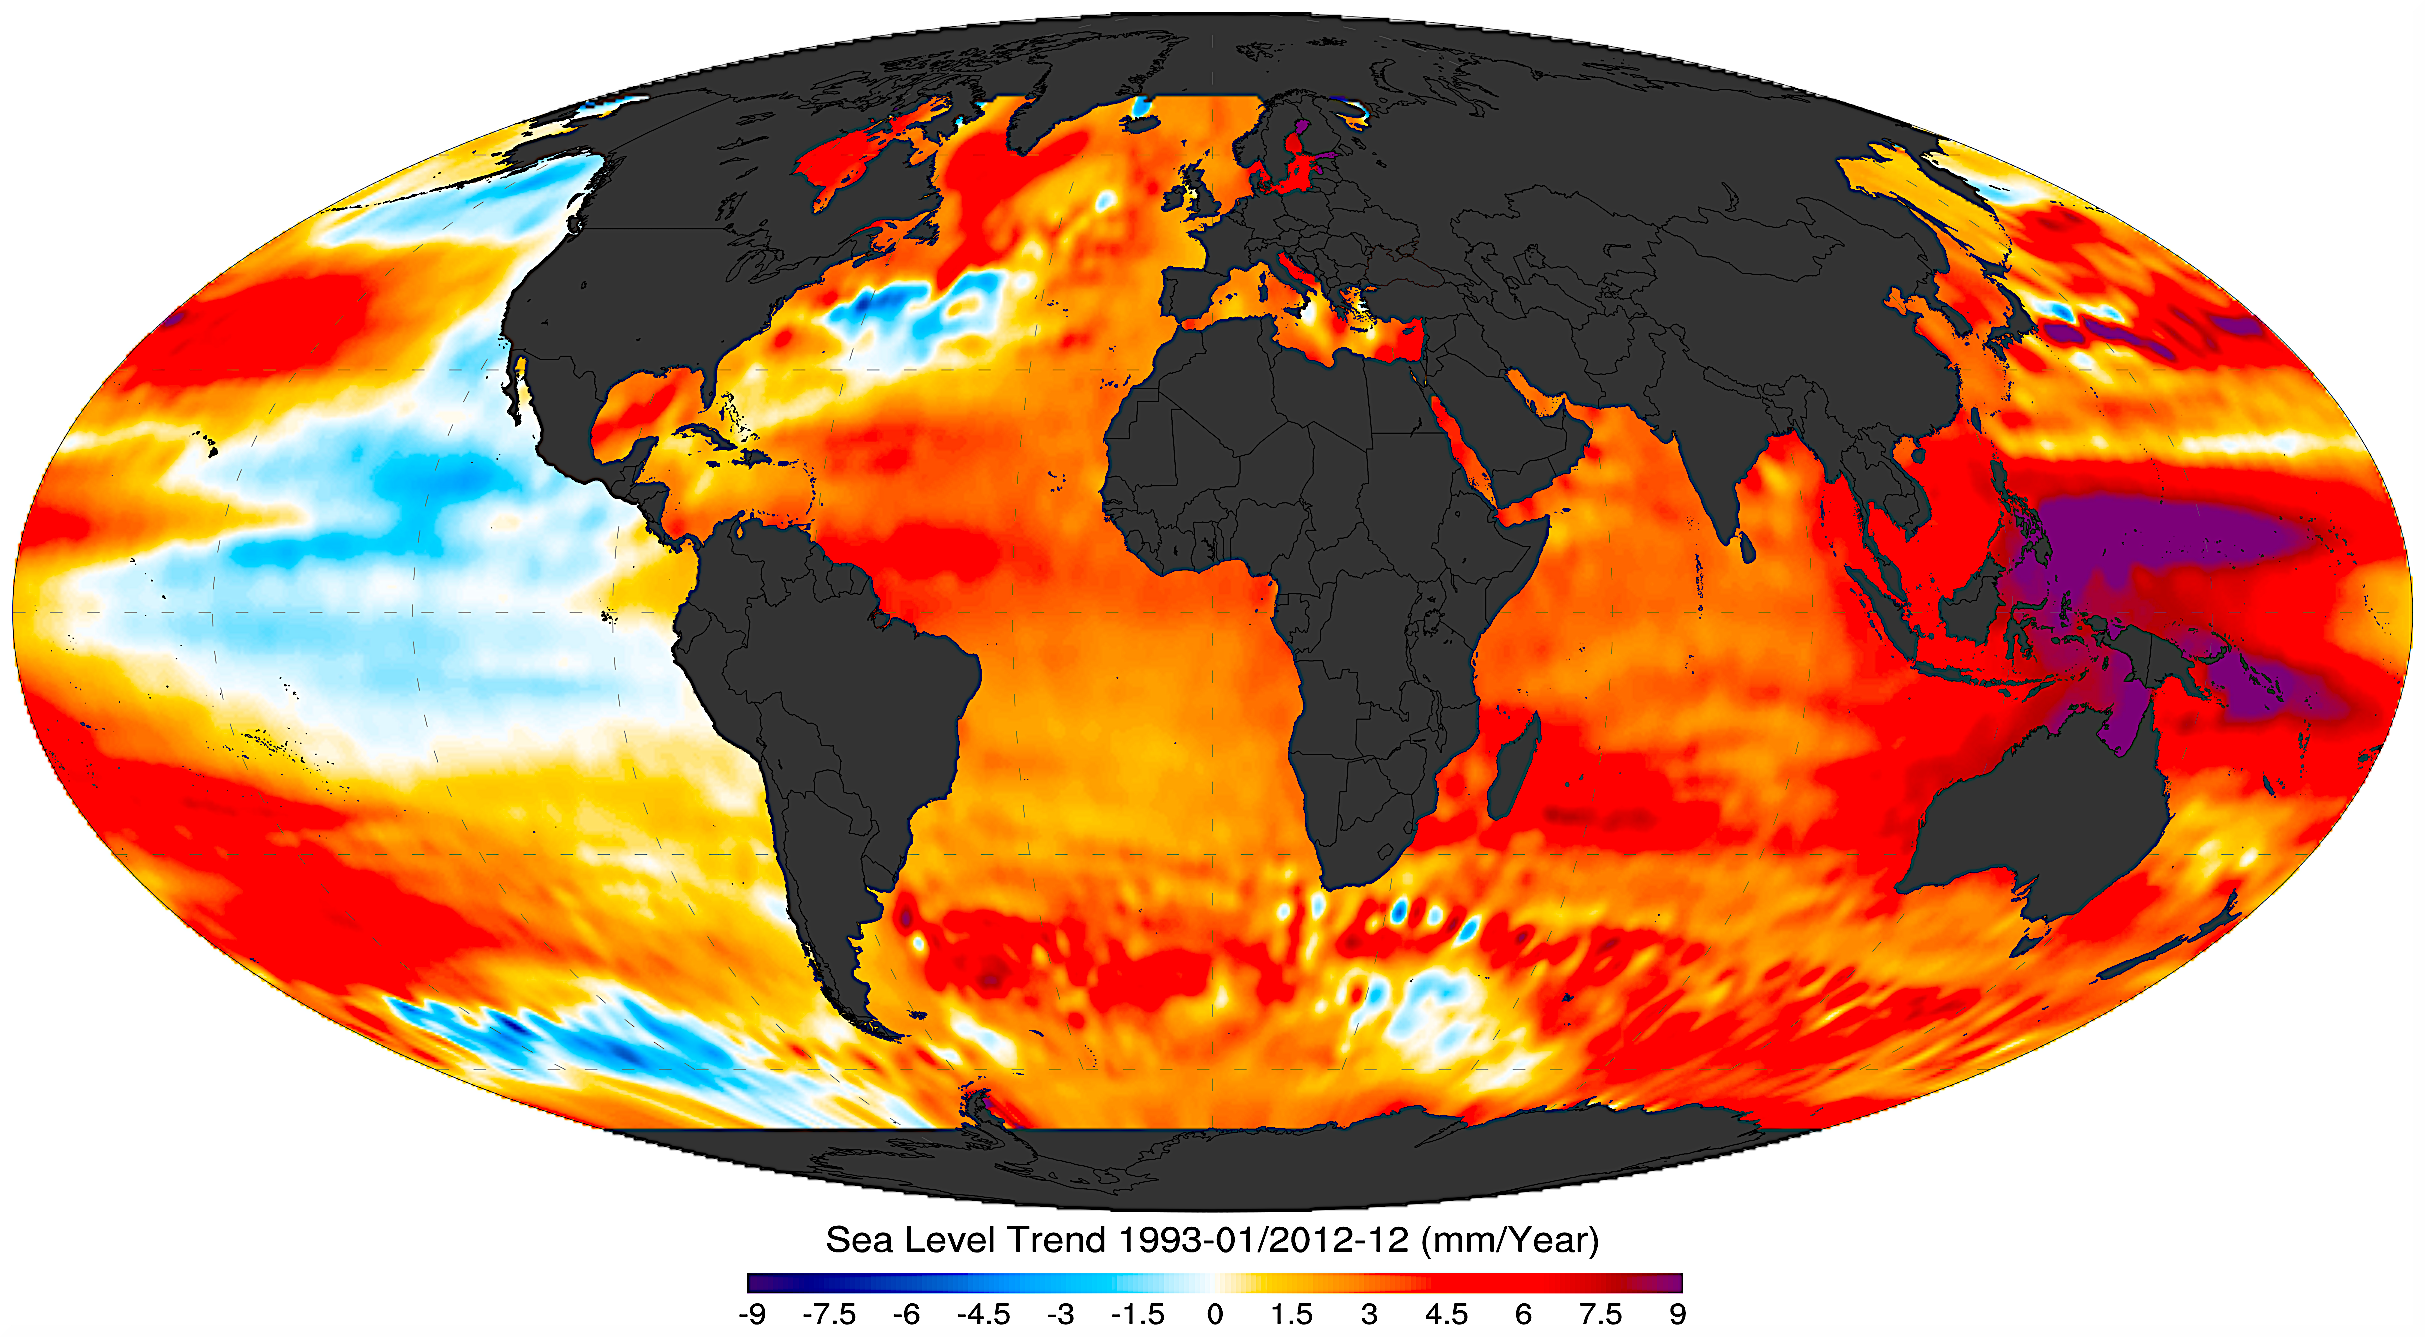 In North Carolina, by 2060 the city of Wilmington will experience almost a foot of sea level rise, under NOAA's lowest sea level projections,and potentially as much as 2 to 4 feet as the global climate continues to warm over the next 40 years. Credit: Visualization of NOAA data by Giorgiogp2/CC-SA-3.0 Unported noaa